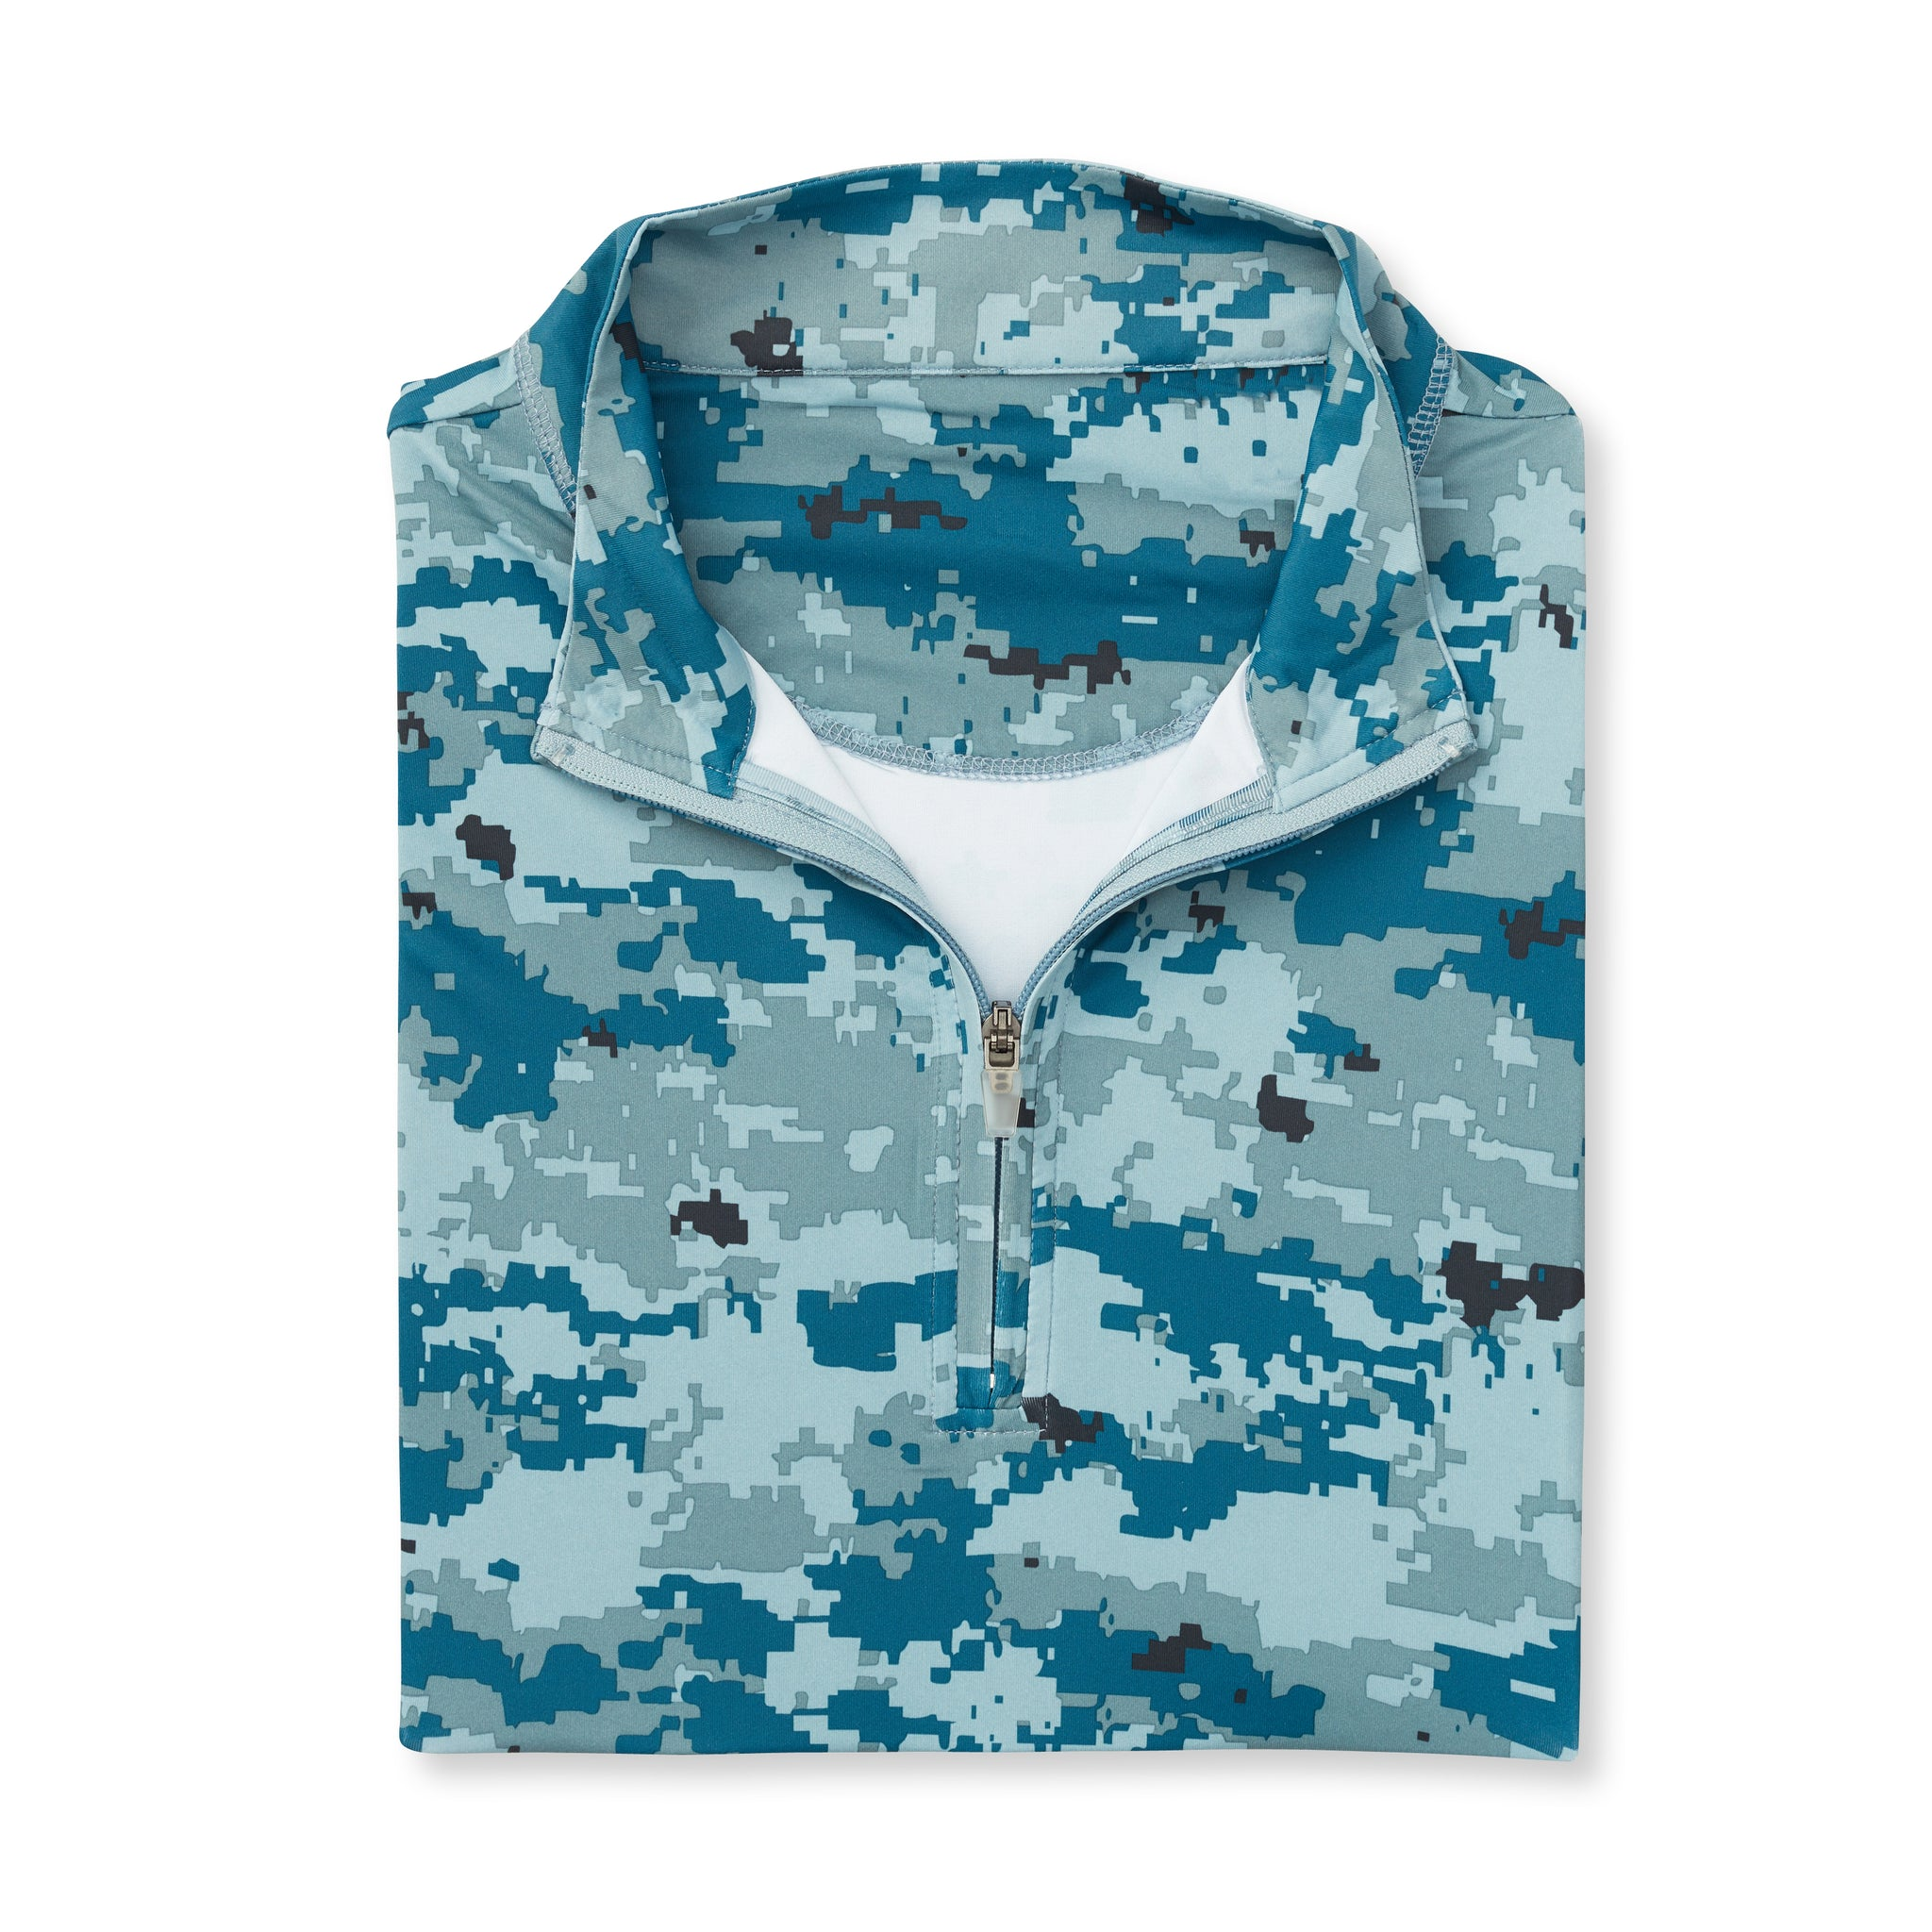 Digital Camo Half Zip - Sea & Air IS46005